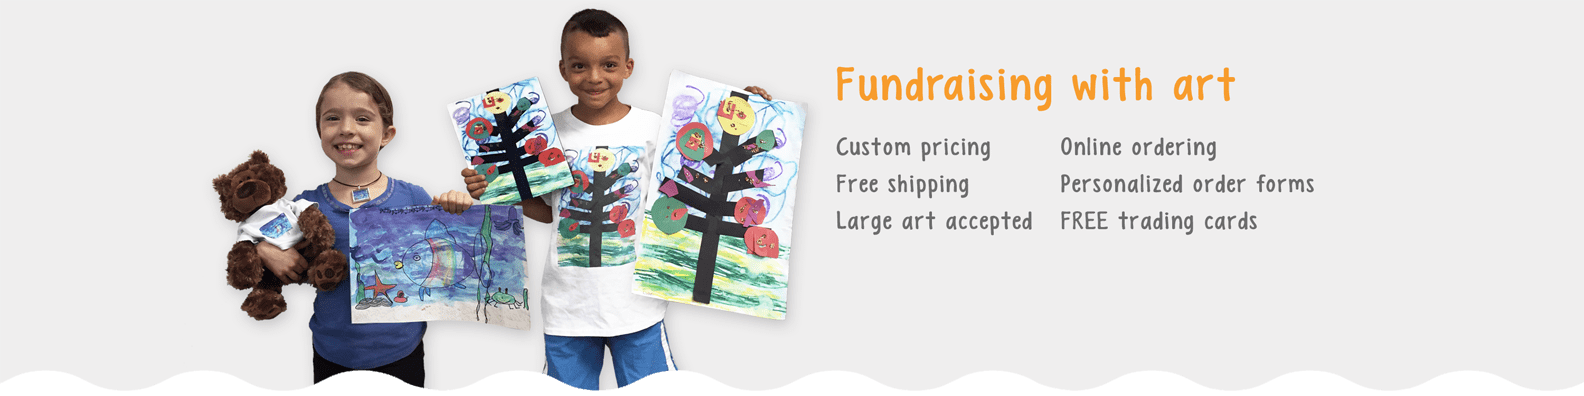 Fundraising With Art Banner